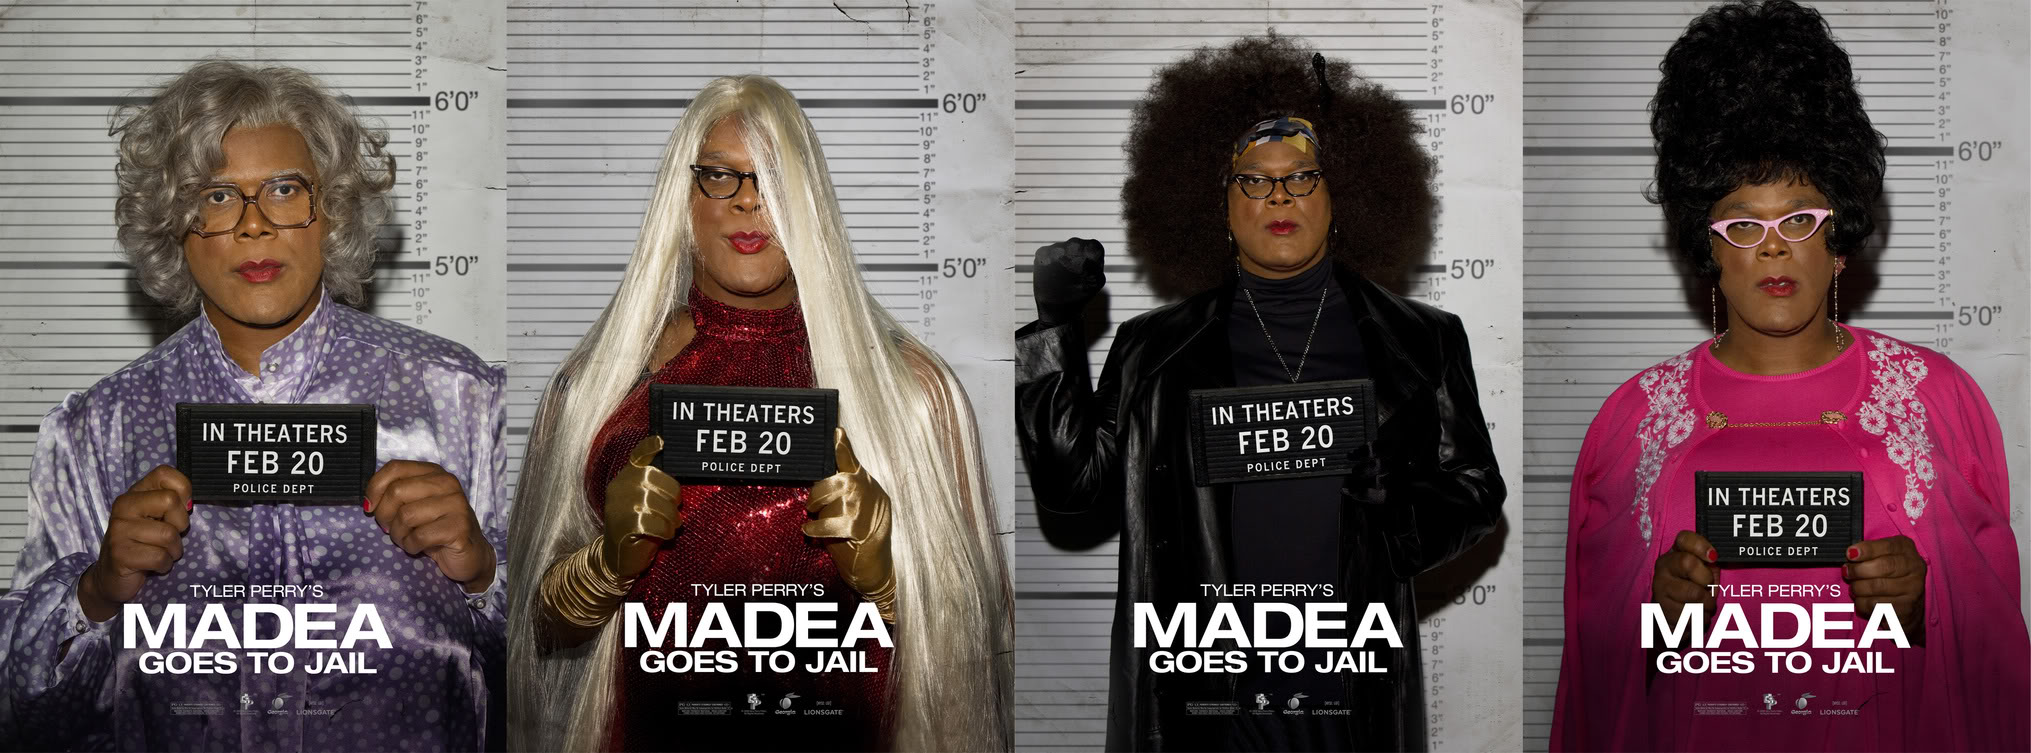 Madea Its Friday Quotes. QuotesGram